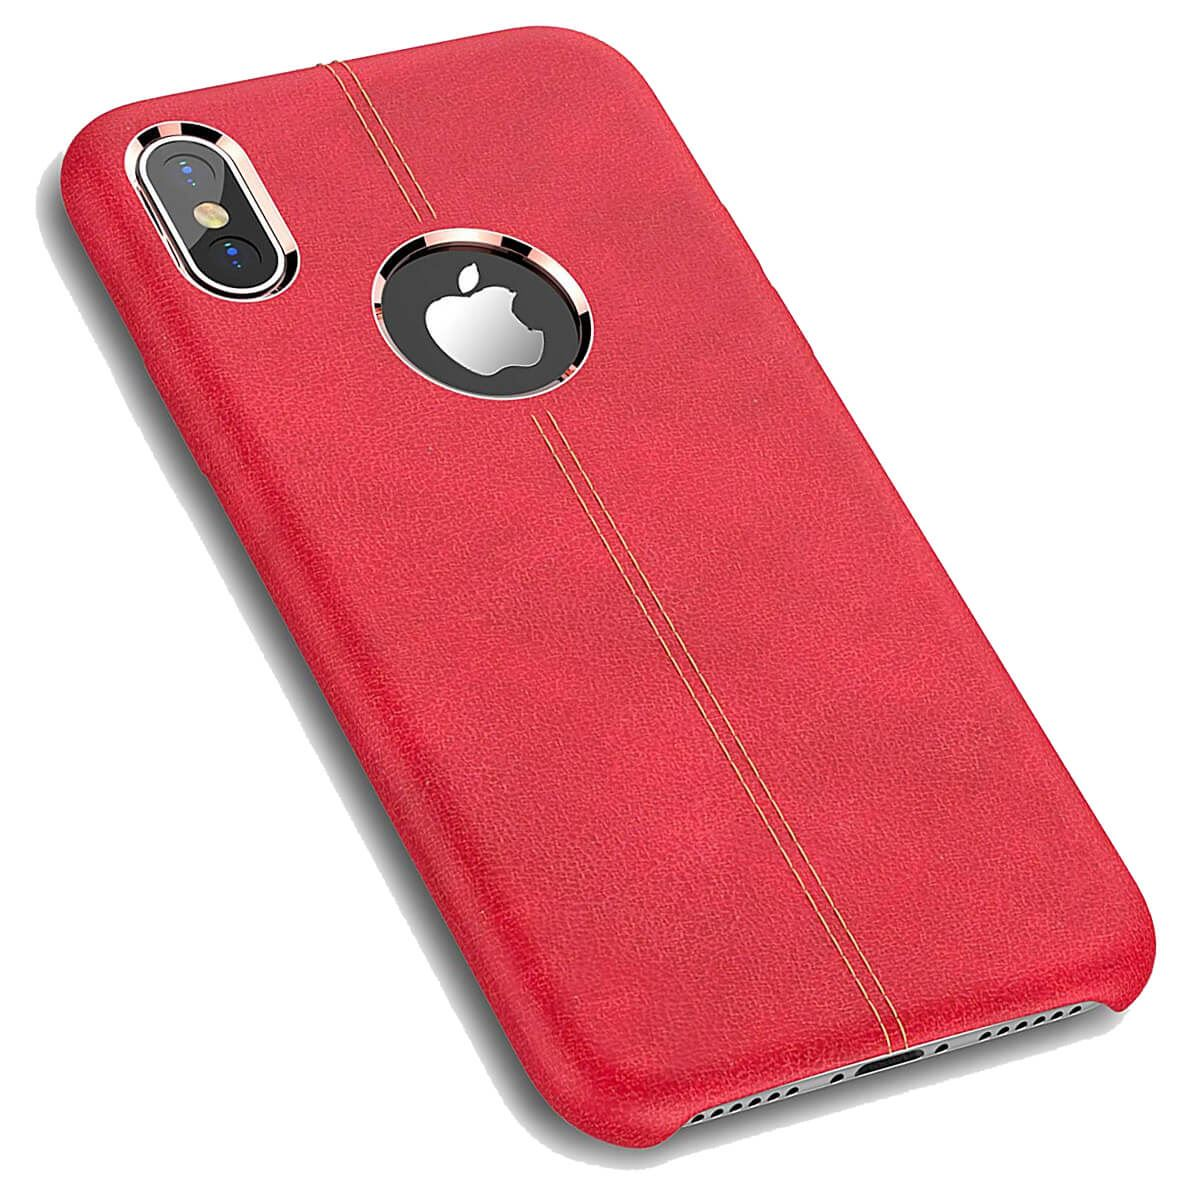 Rugged-Thin-Case-Skin-For-Apple-iPhone-10-X-8-7-Plus-6s-Genuine-Leather-Cover thumbnail 12